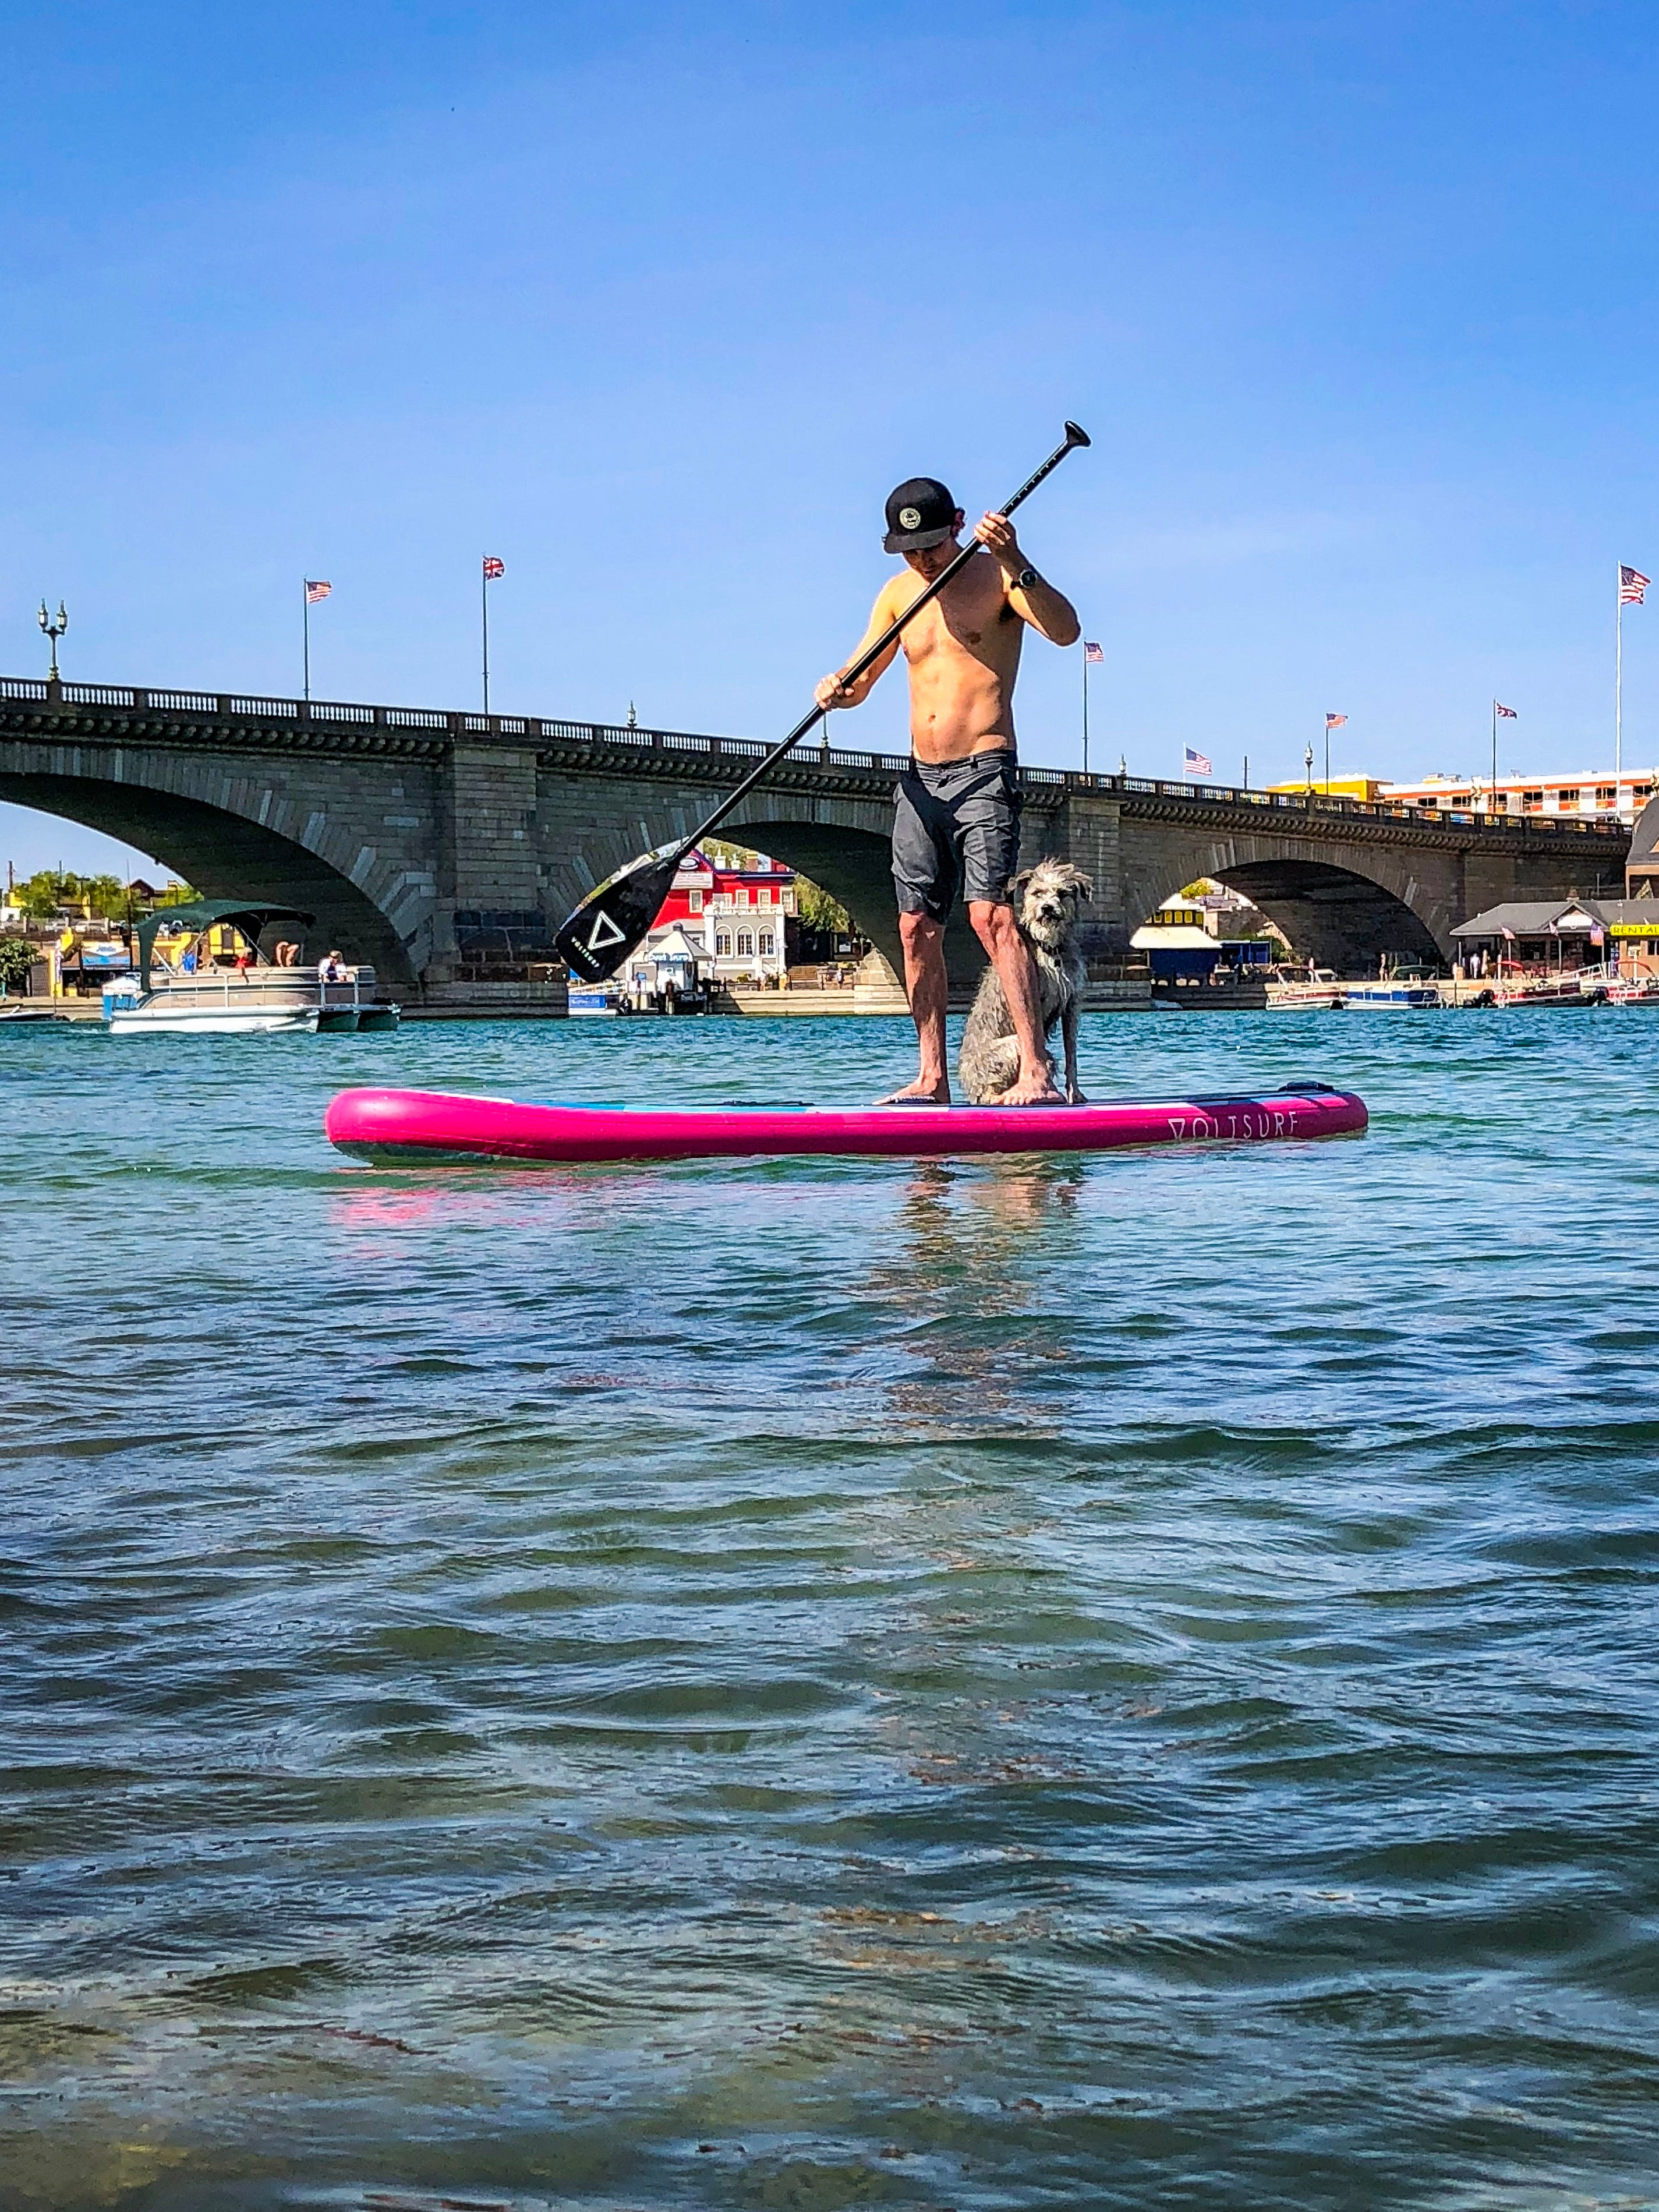 11'0 ROVER PINK INFLATABLE PADDLEBOARD - Canadian Board Company